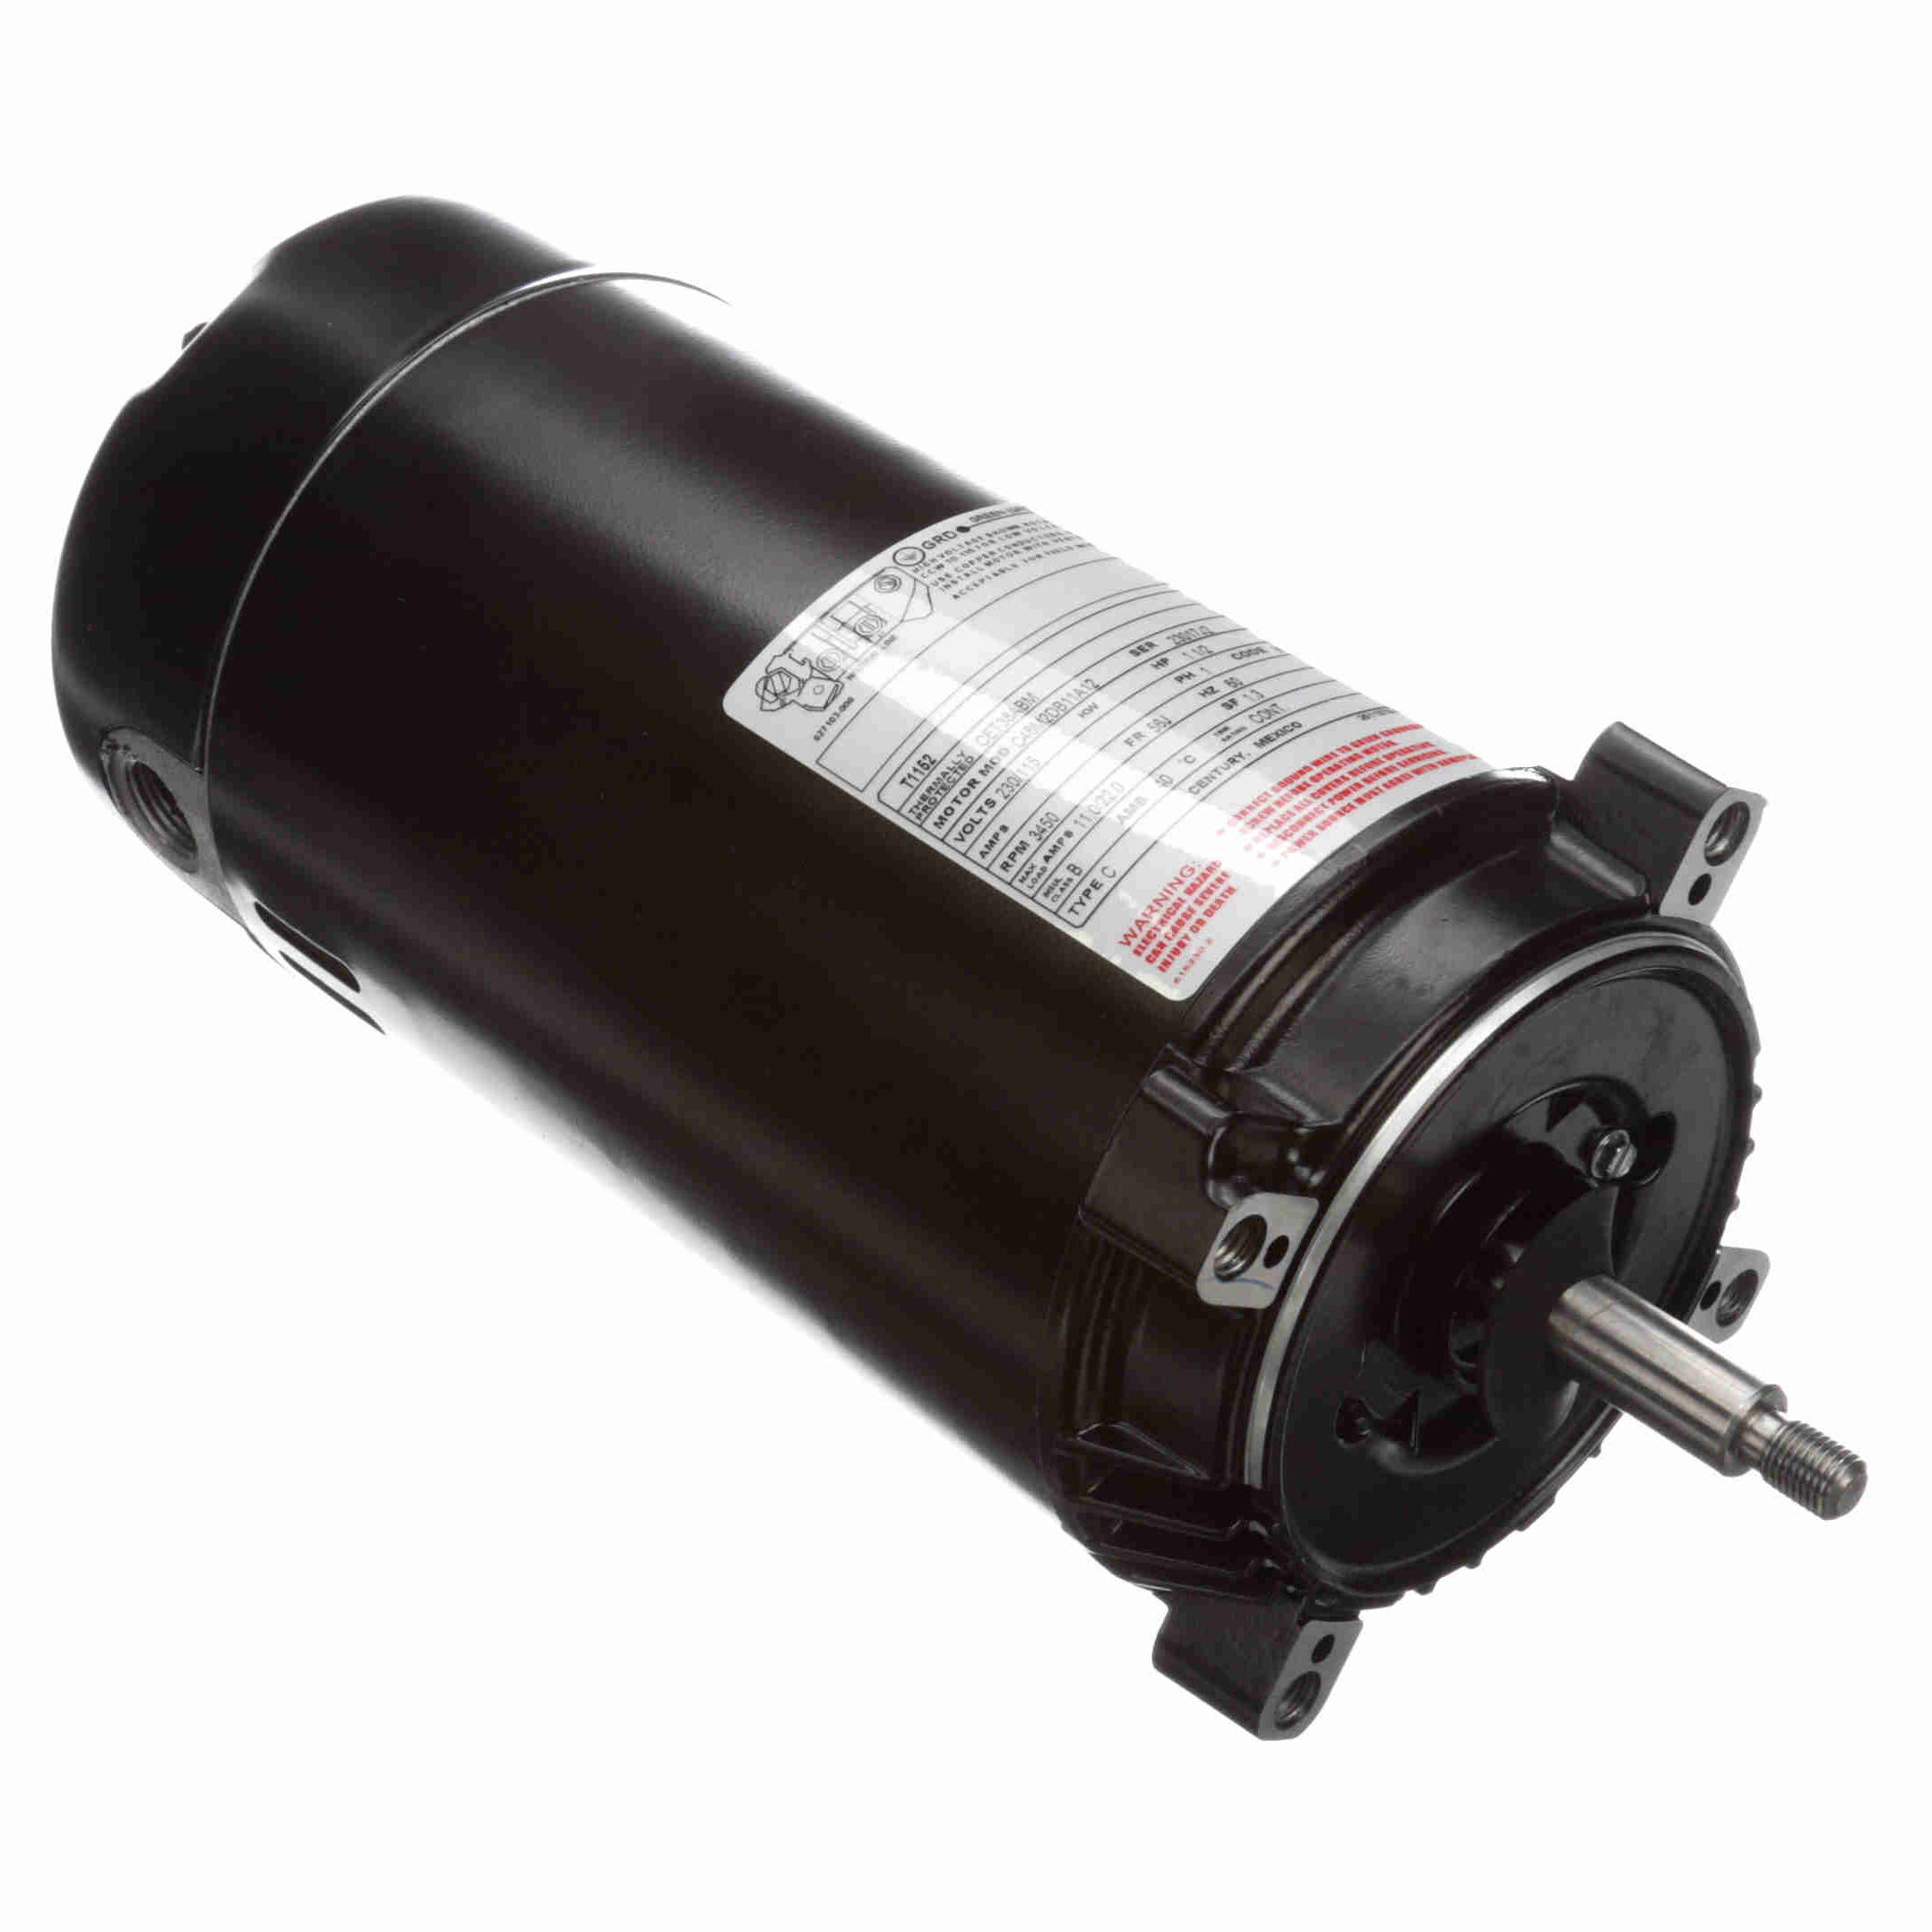 T1152 Century 1 5hp Pool Spa Pump Motor 3450 Rpm